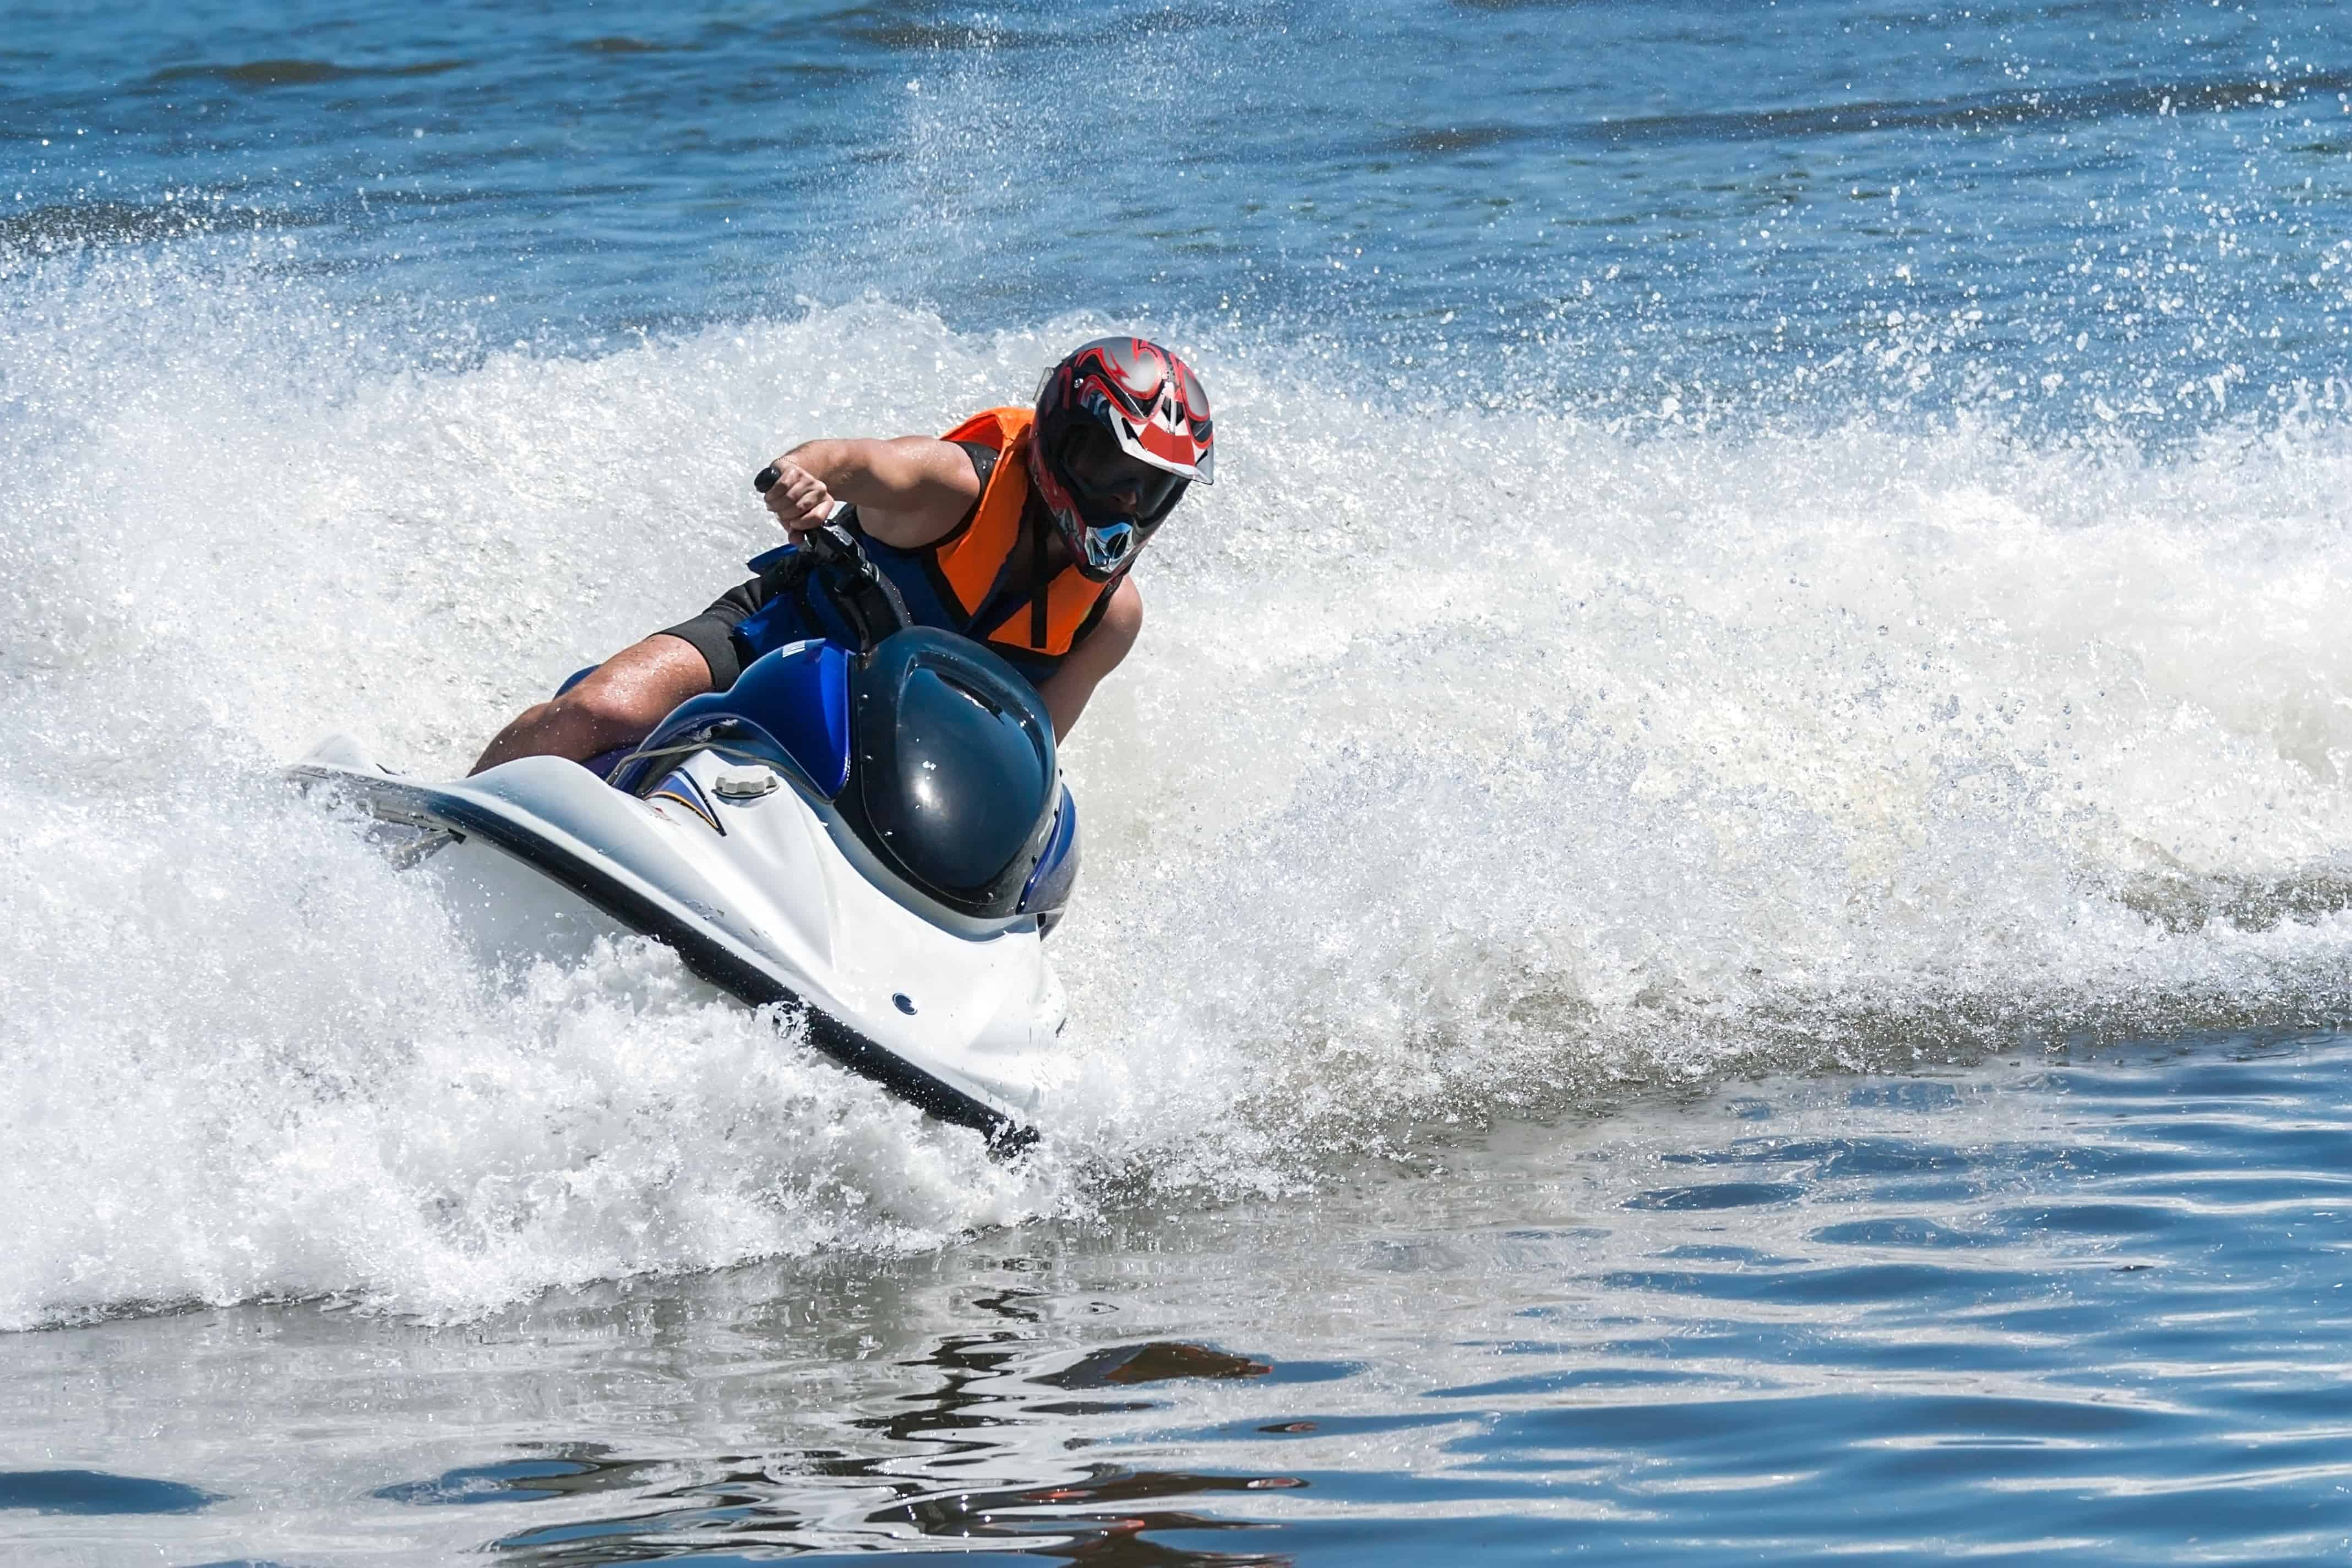 Periodic Maintenance Required for Jet Skis (Easy Maintenance)